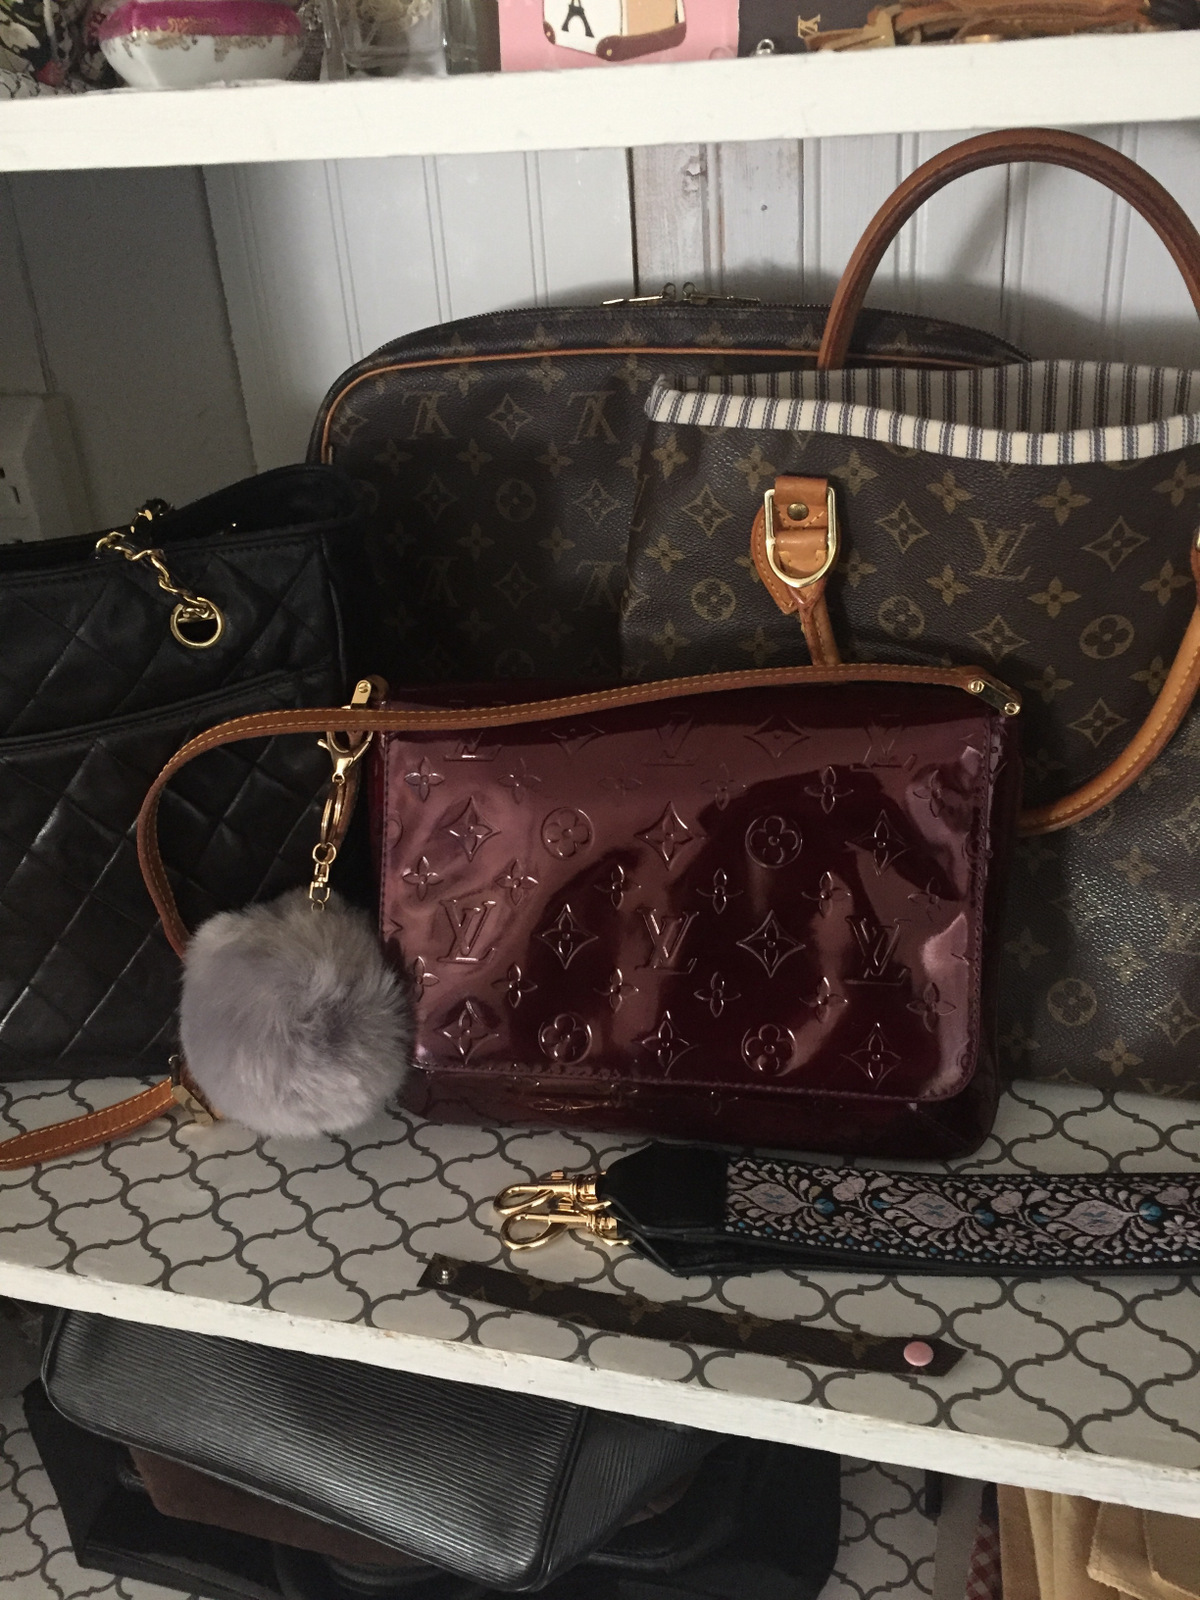 5f11abc68f1 Let s Add Sprinkles  How To Dye A Vernis Louis Vuitton Bag